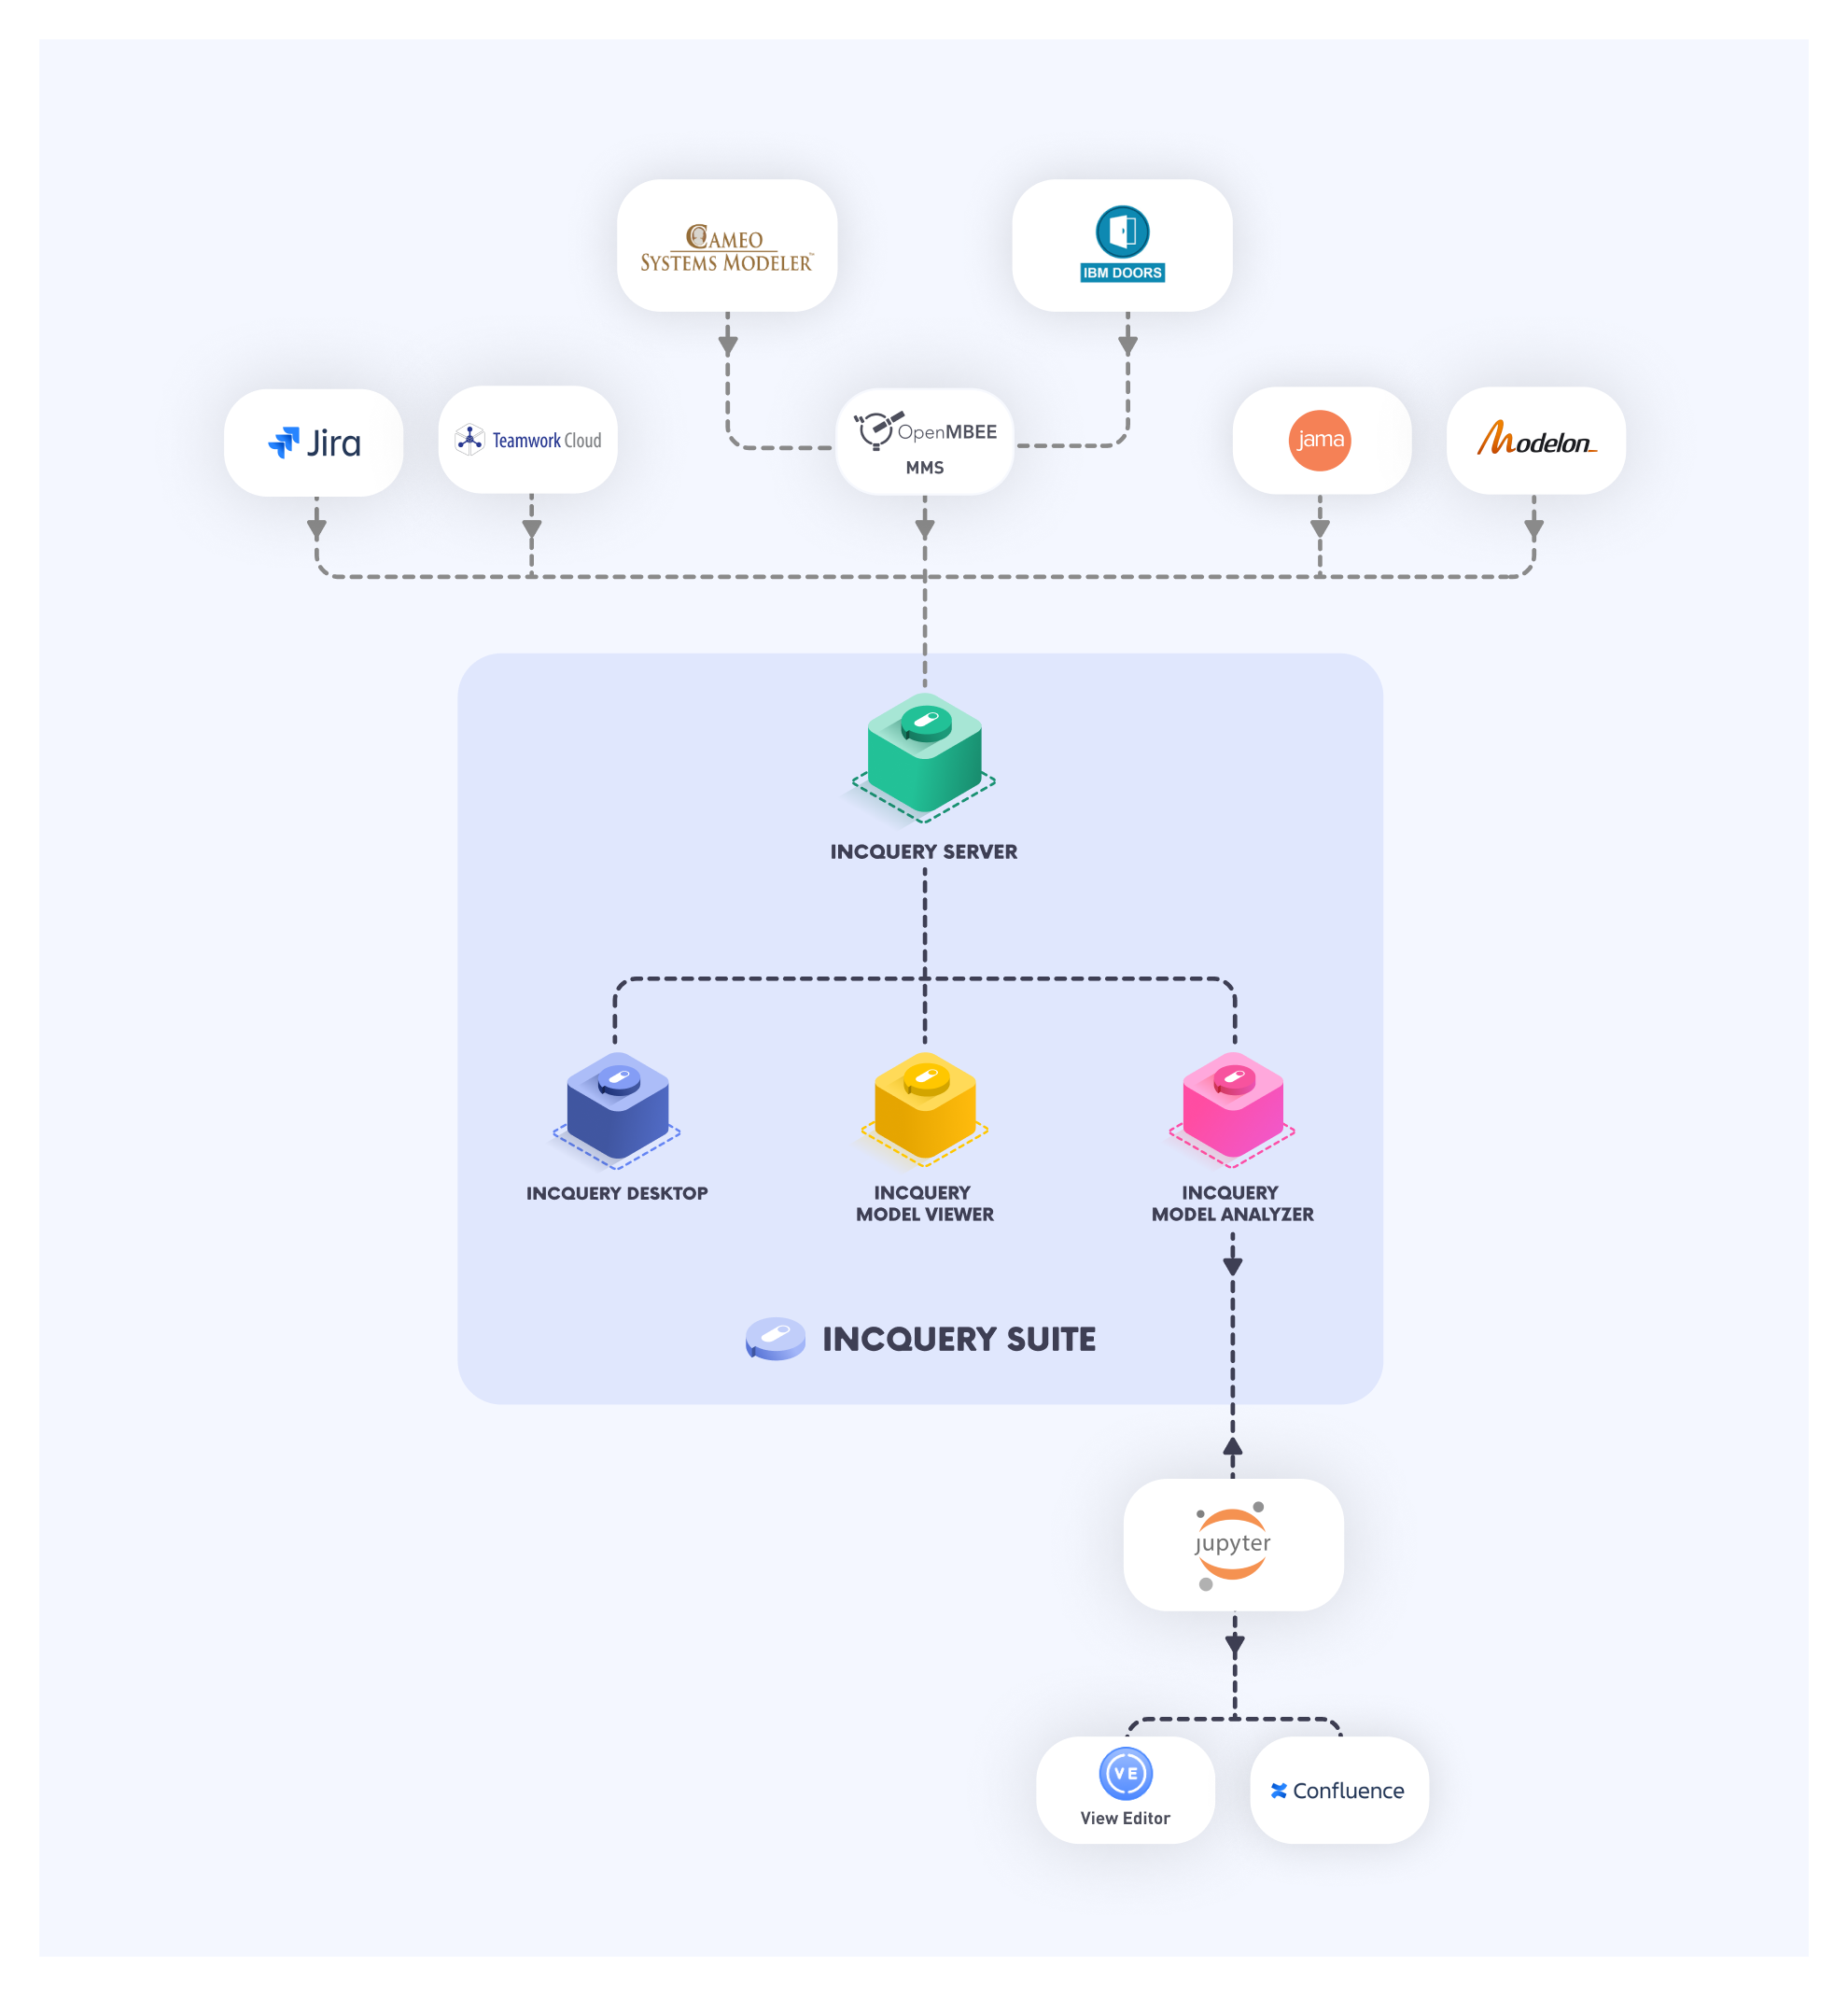 The infographics illustrates IncQuery Suite's role at NASA JPL - how our revolutionary tool helps them connecting their engineering tools - JIRA, Teamwork Cloud, CAMEO Systems Modeler, OpenMBEE MMS, JAMA, Modelon